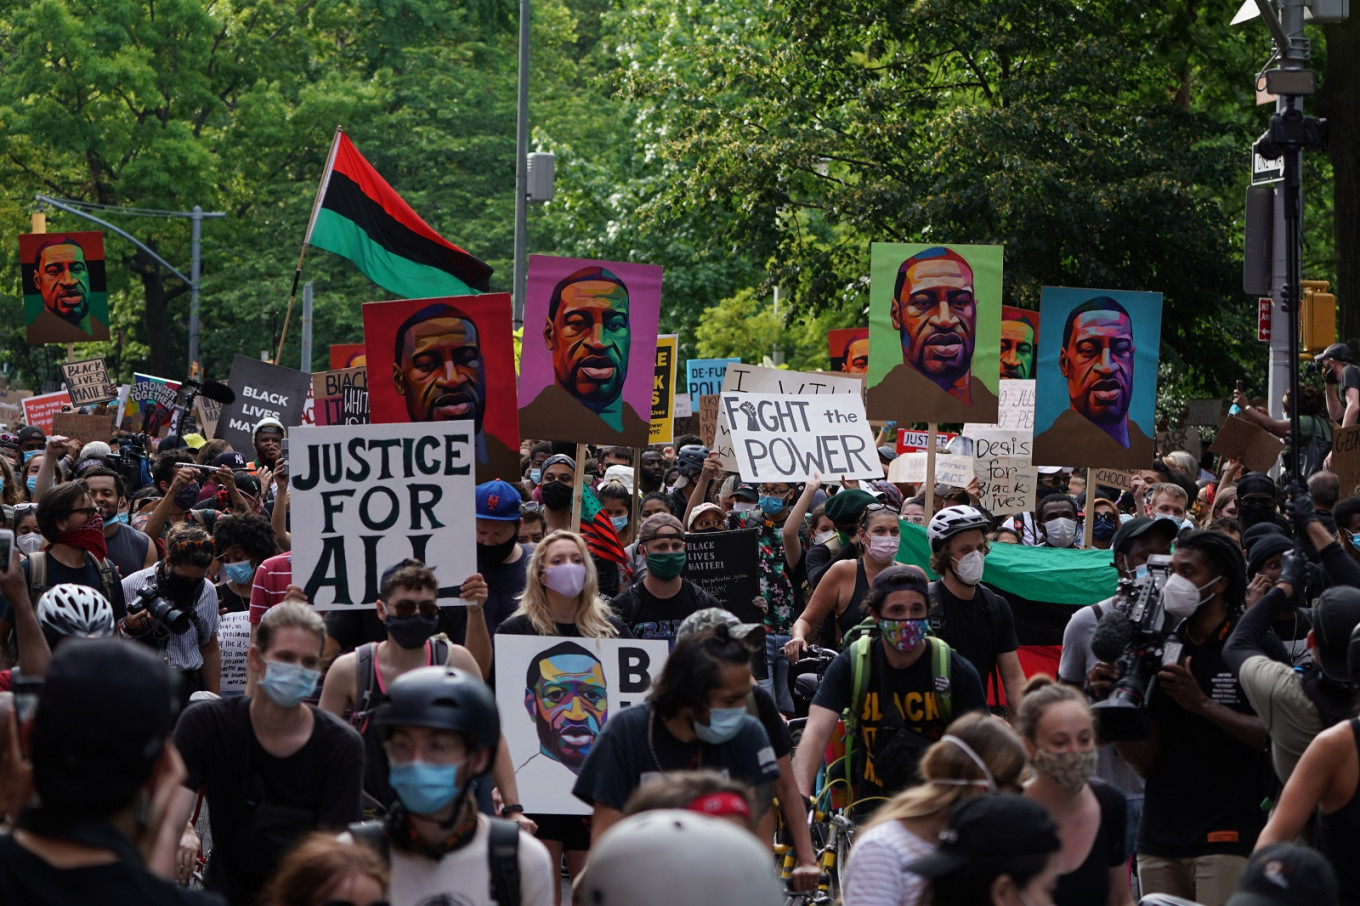 Protestors clash with Seattle police in latest outcry over US feds